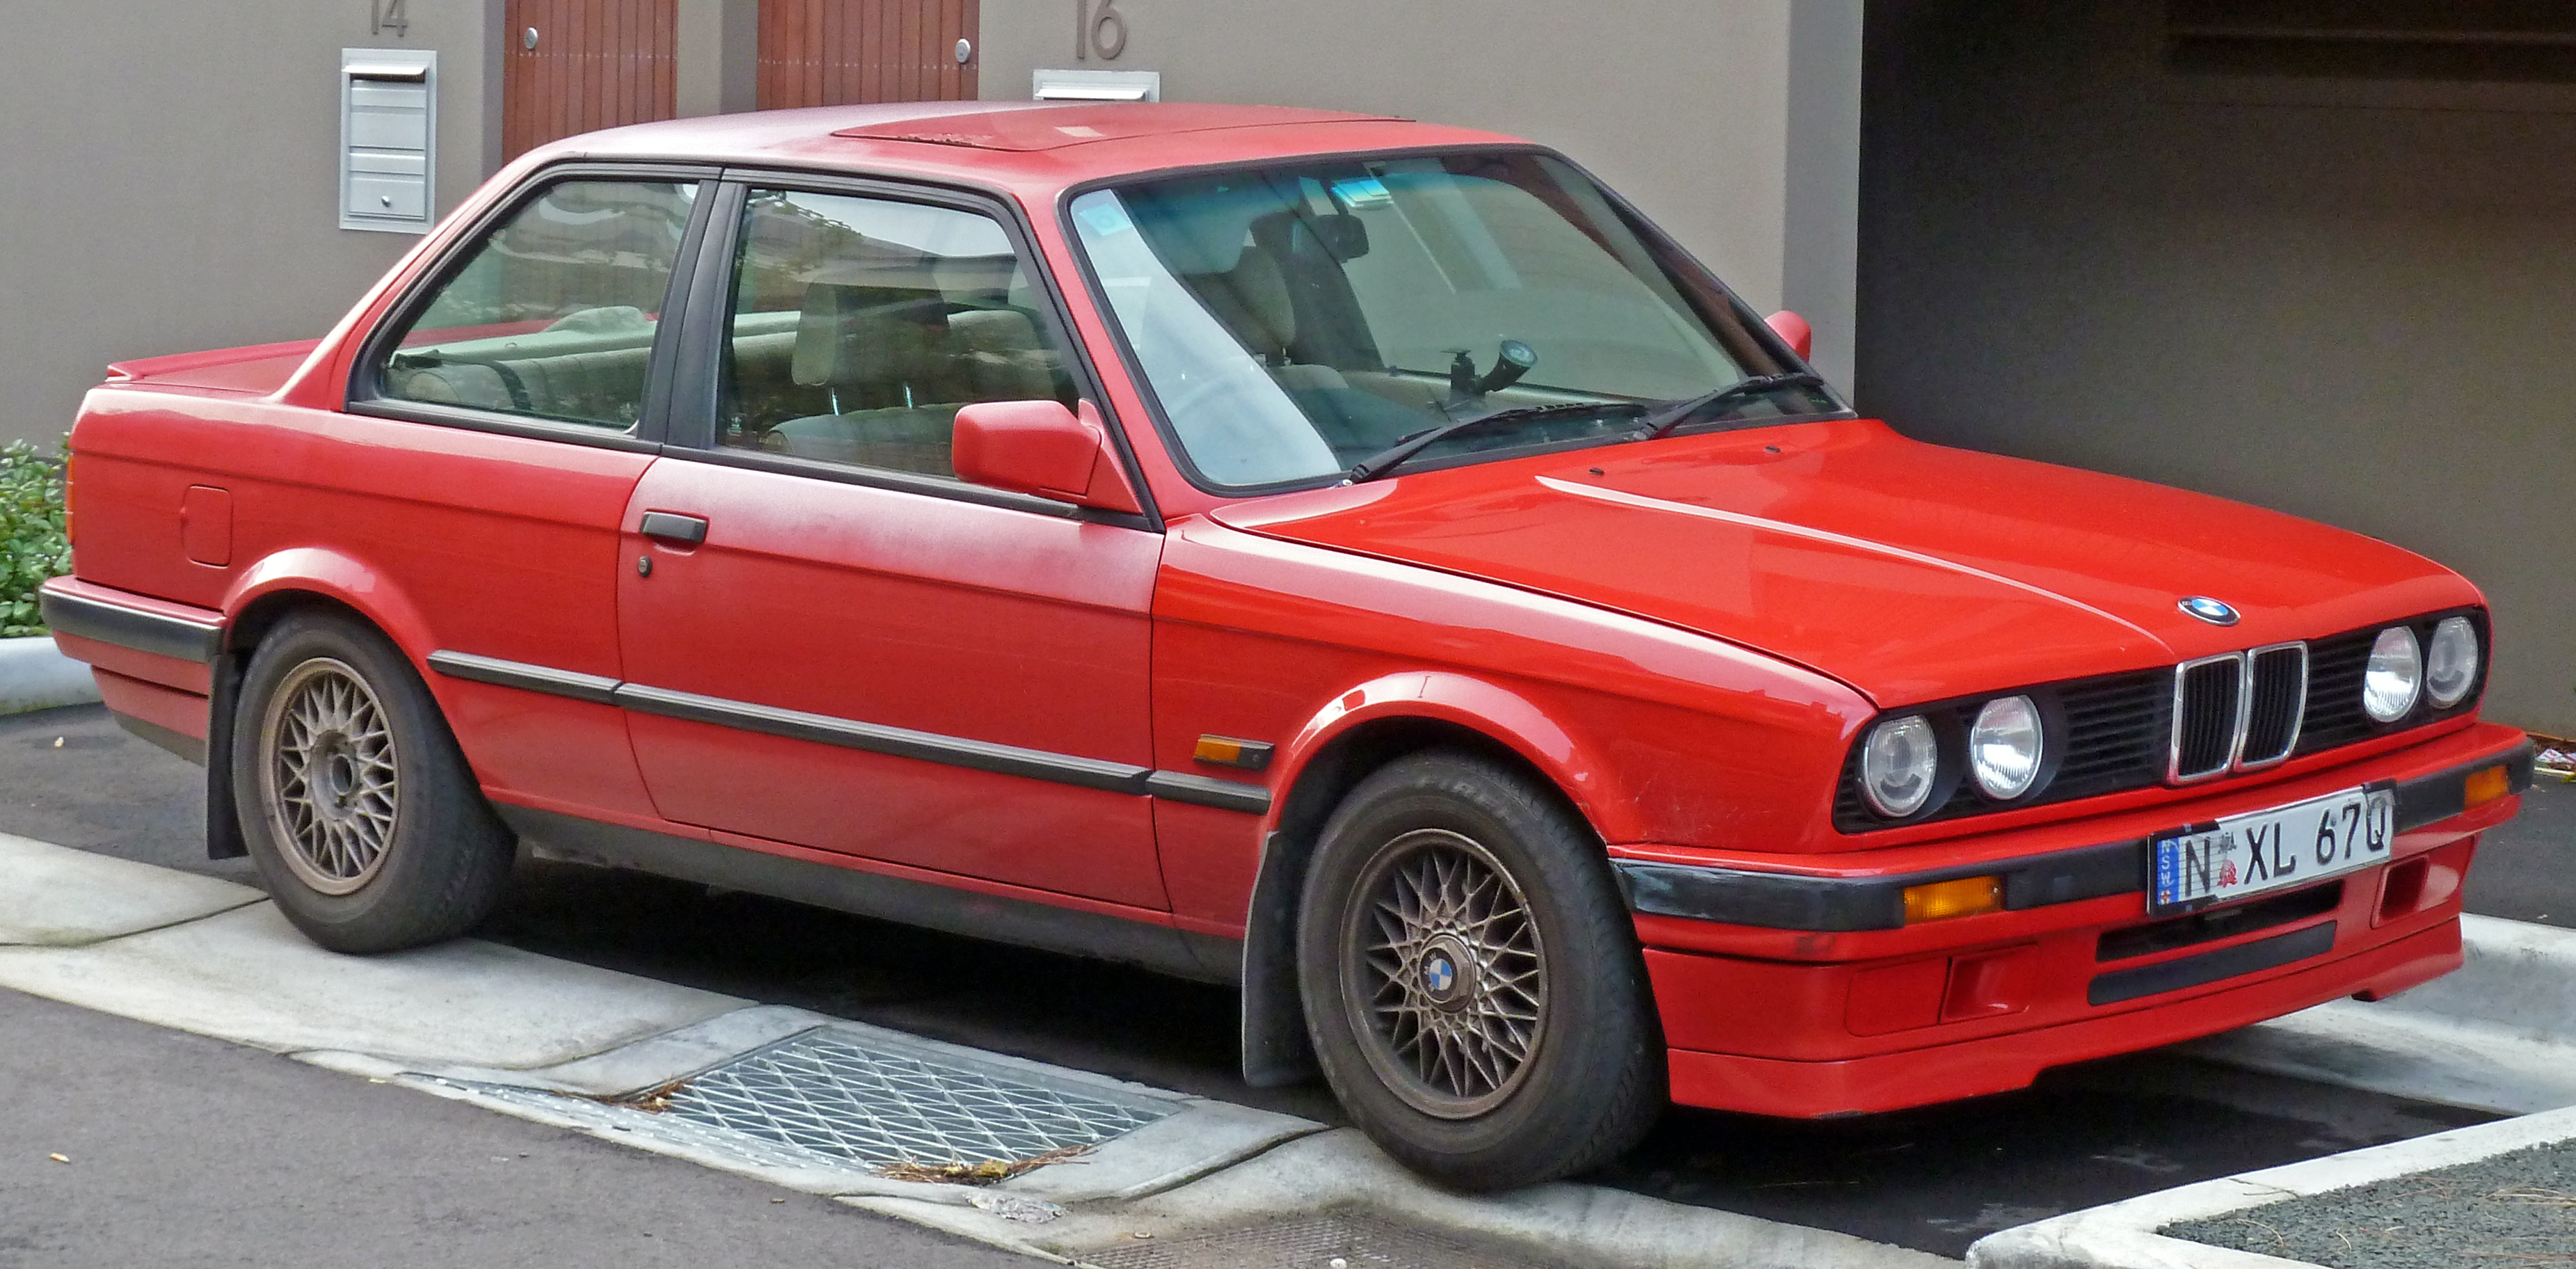 file 1990 1991 bmw 318is e30 2 door sedan wikimedia commons. Black Bedroom Furniture Sets. Home Design Ideas